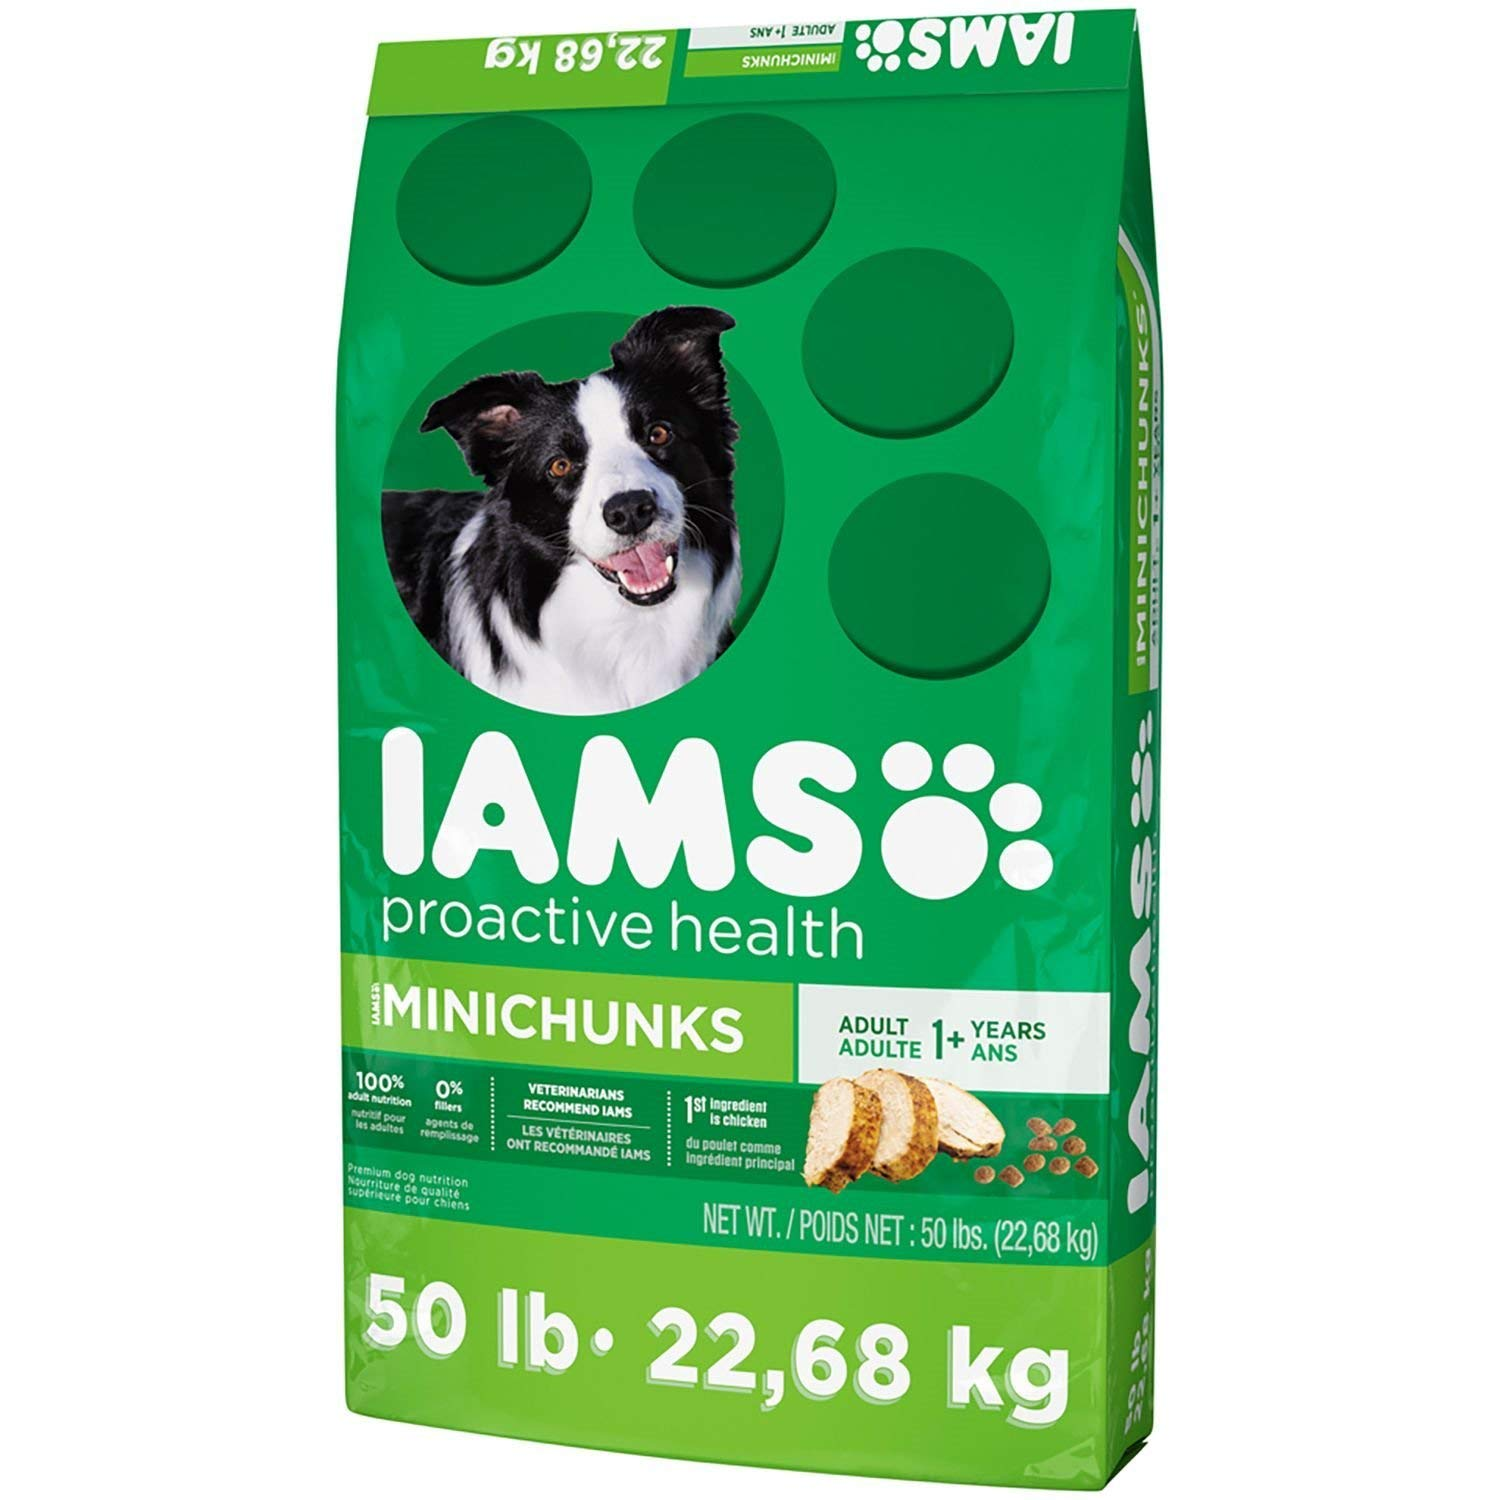 Iams ProActive Health Dog Food, Adult MiniChuncks 50 lbs.